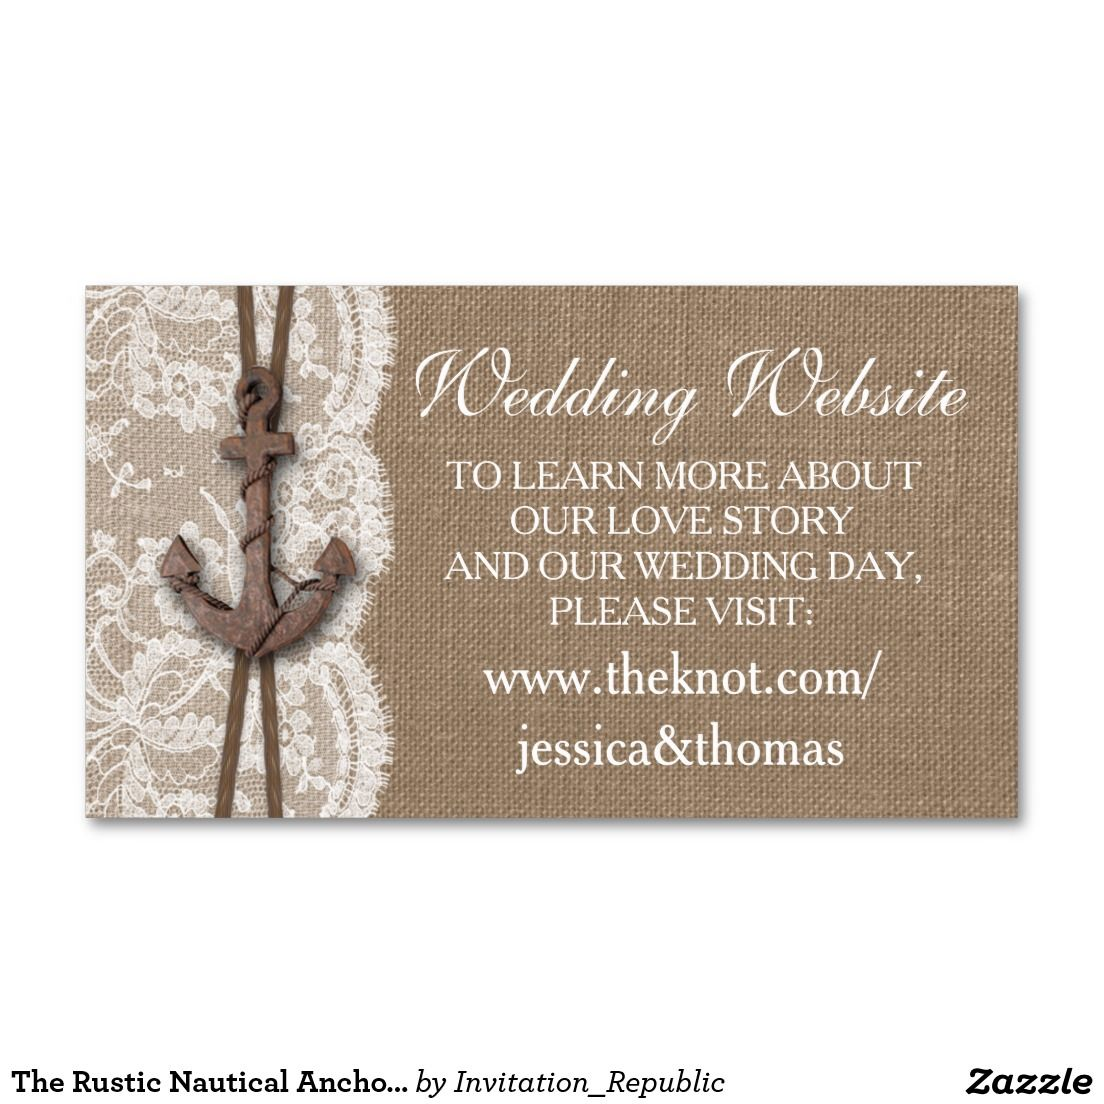 The Rustic Nautical Anchor Wedding Collection Double-Sided ...